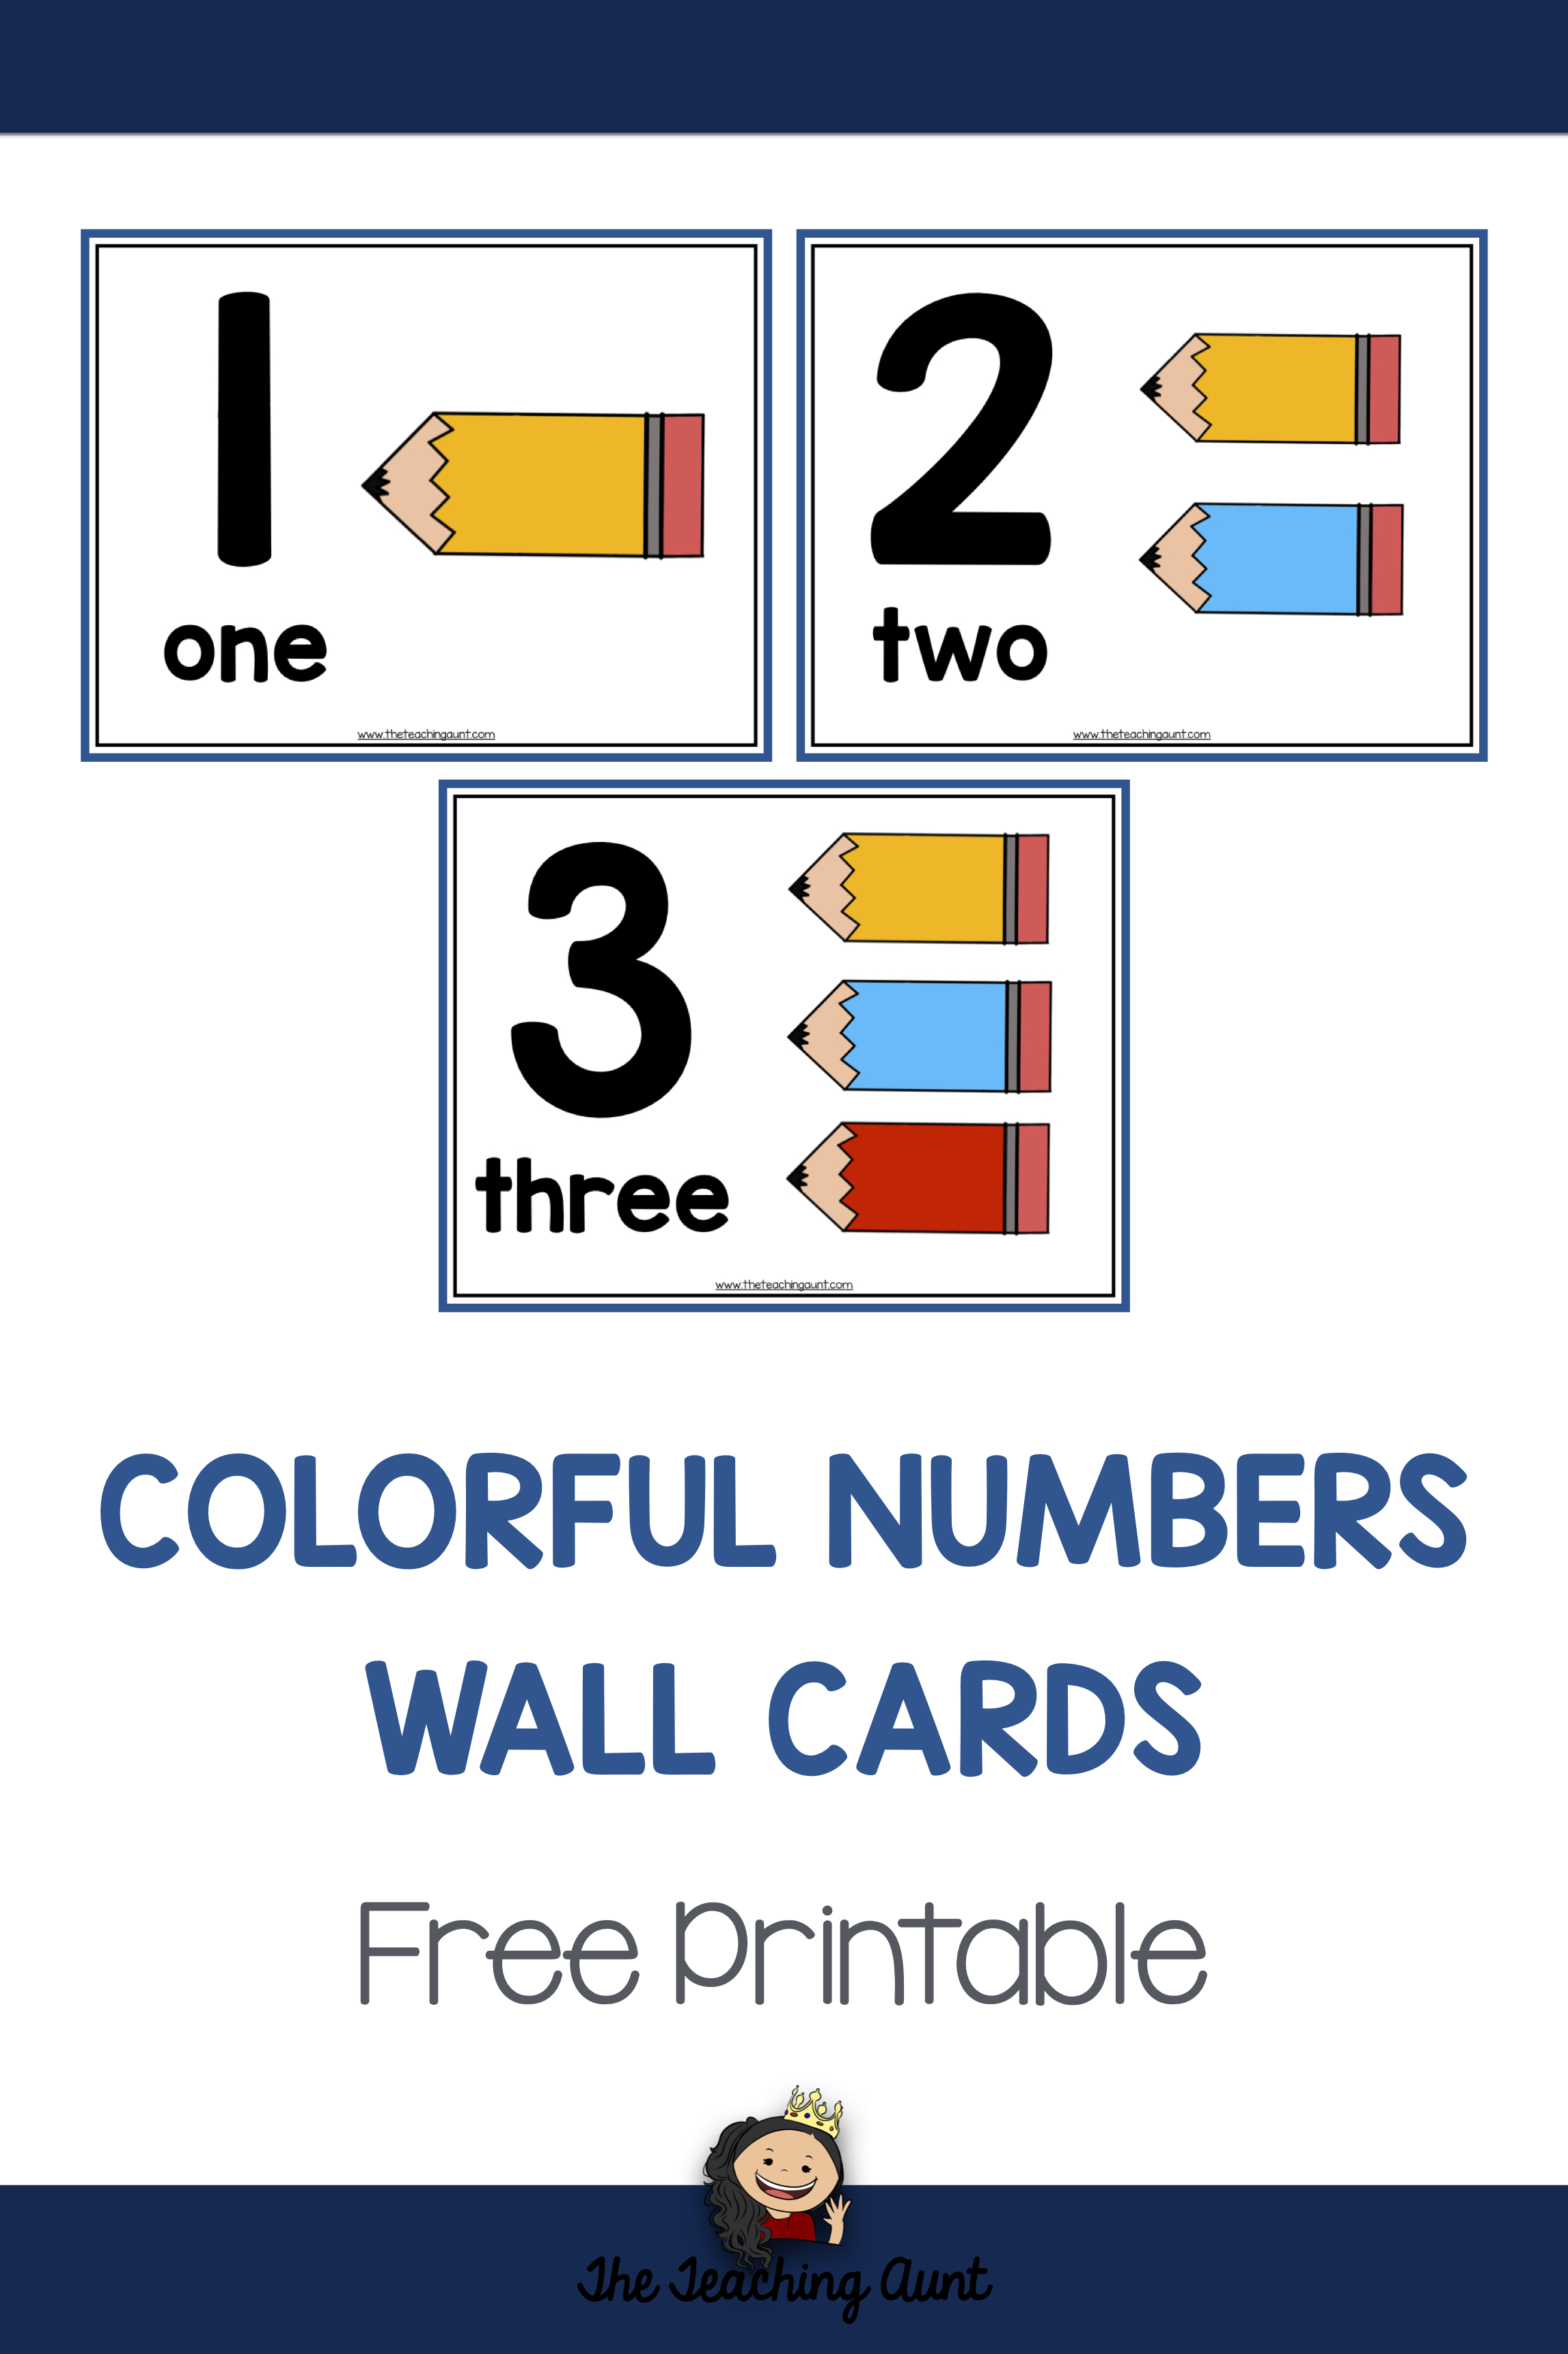 Number Wall Cards For Preschoolers With Colorful Pencil